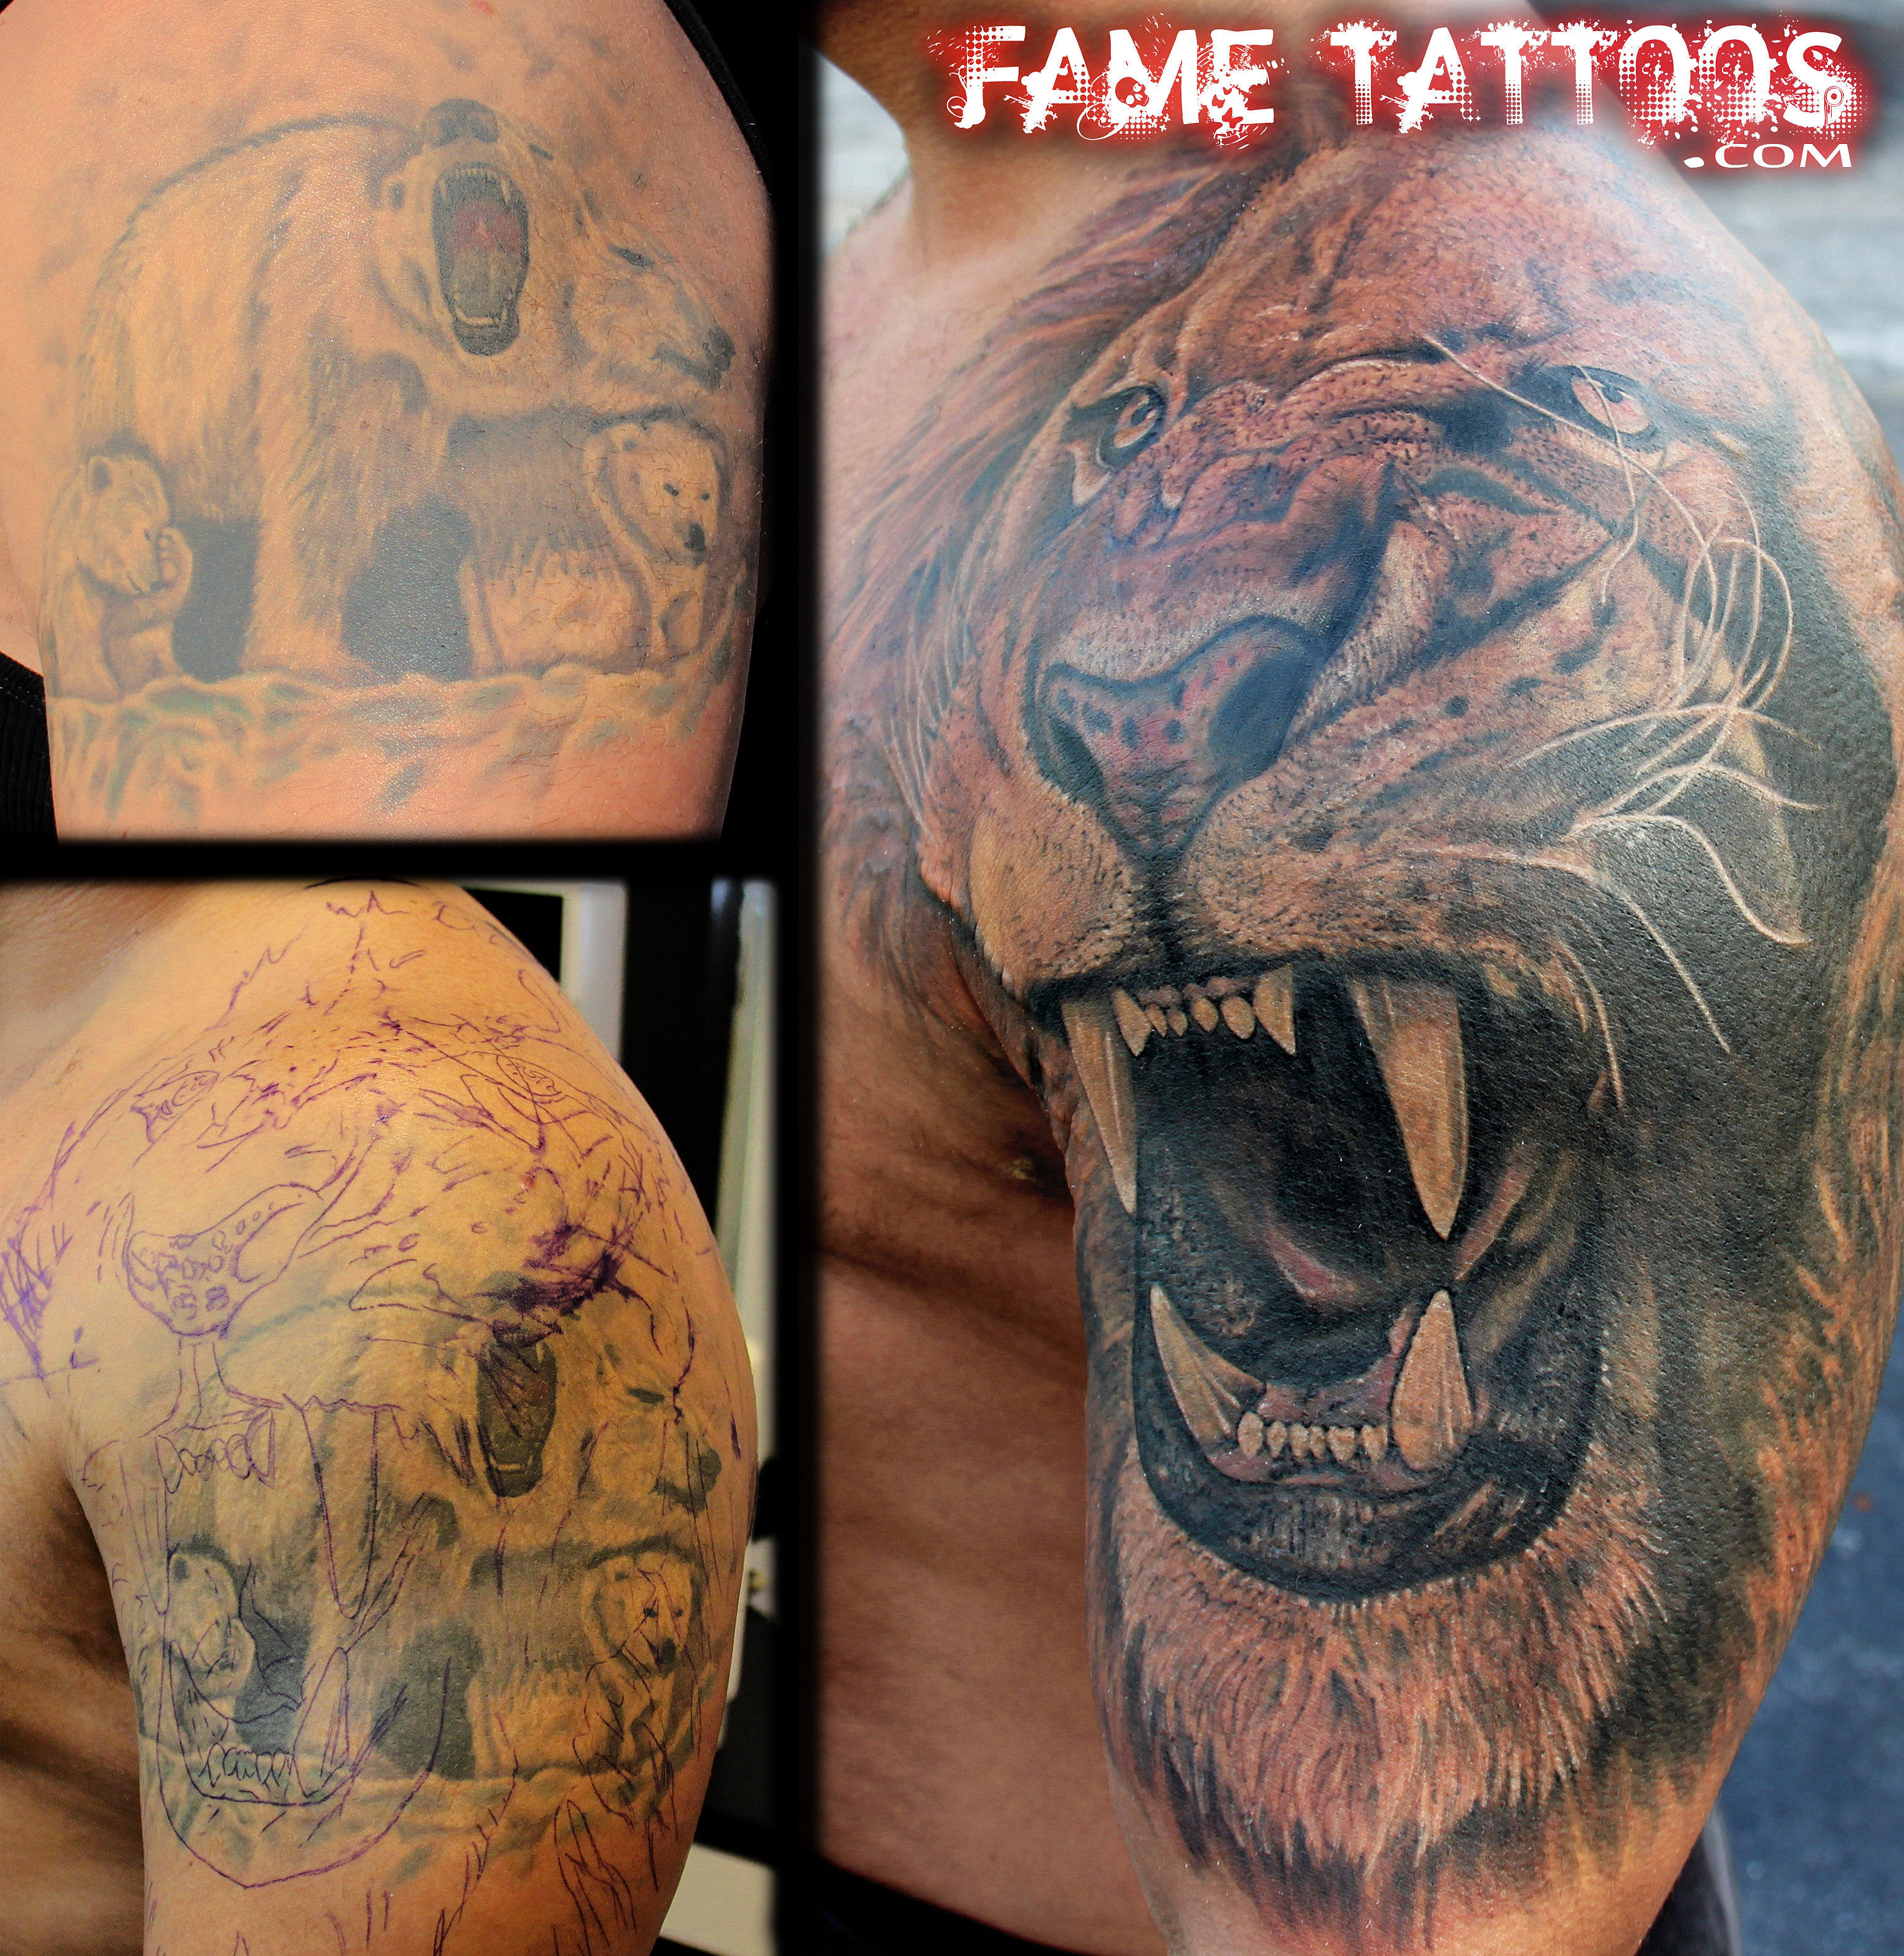 Fame tattoos best tattoo artist in miami miami tattoo for South florida tattoo